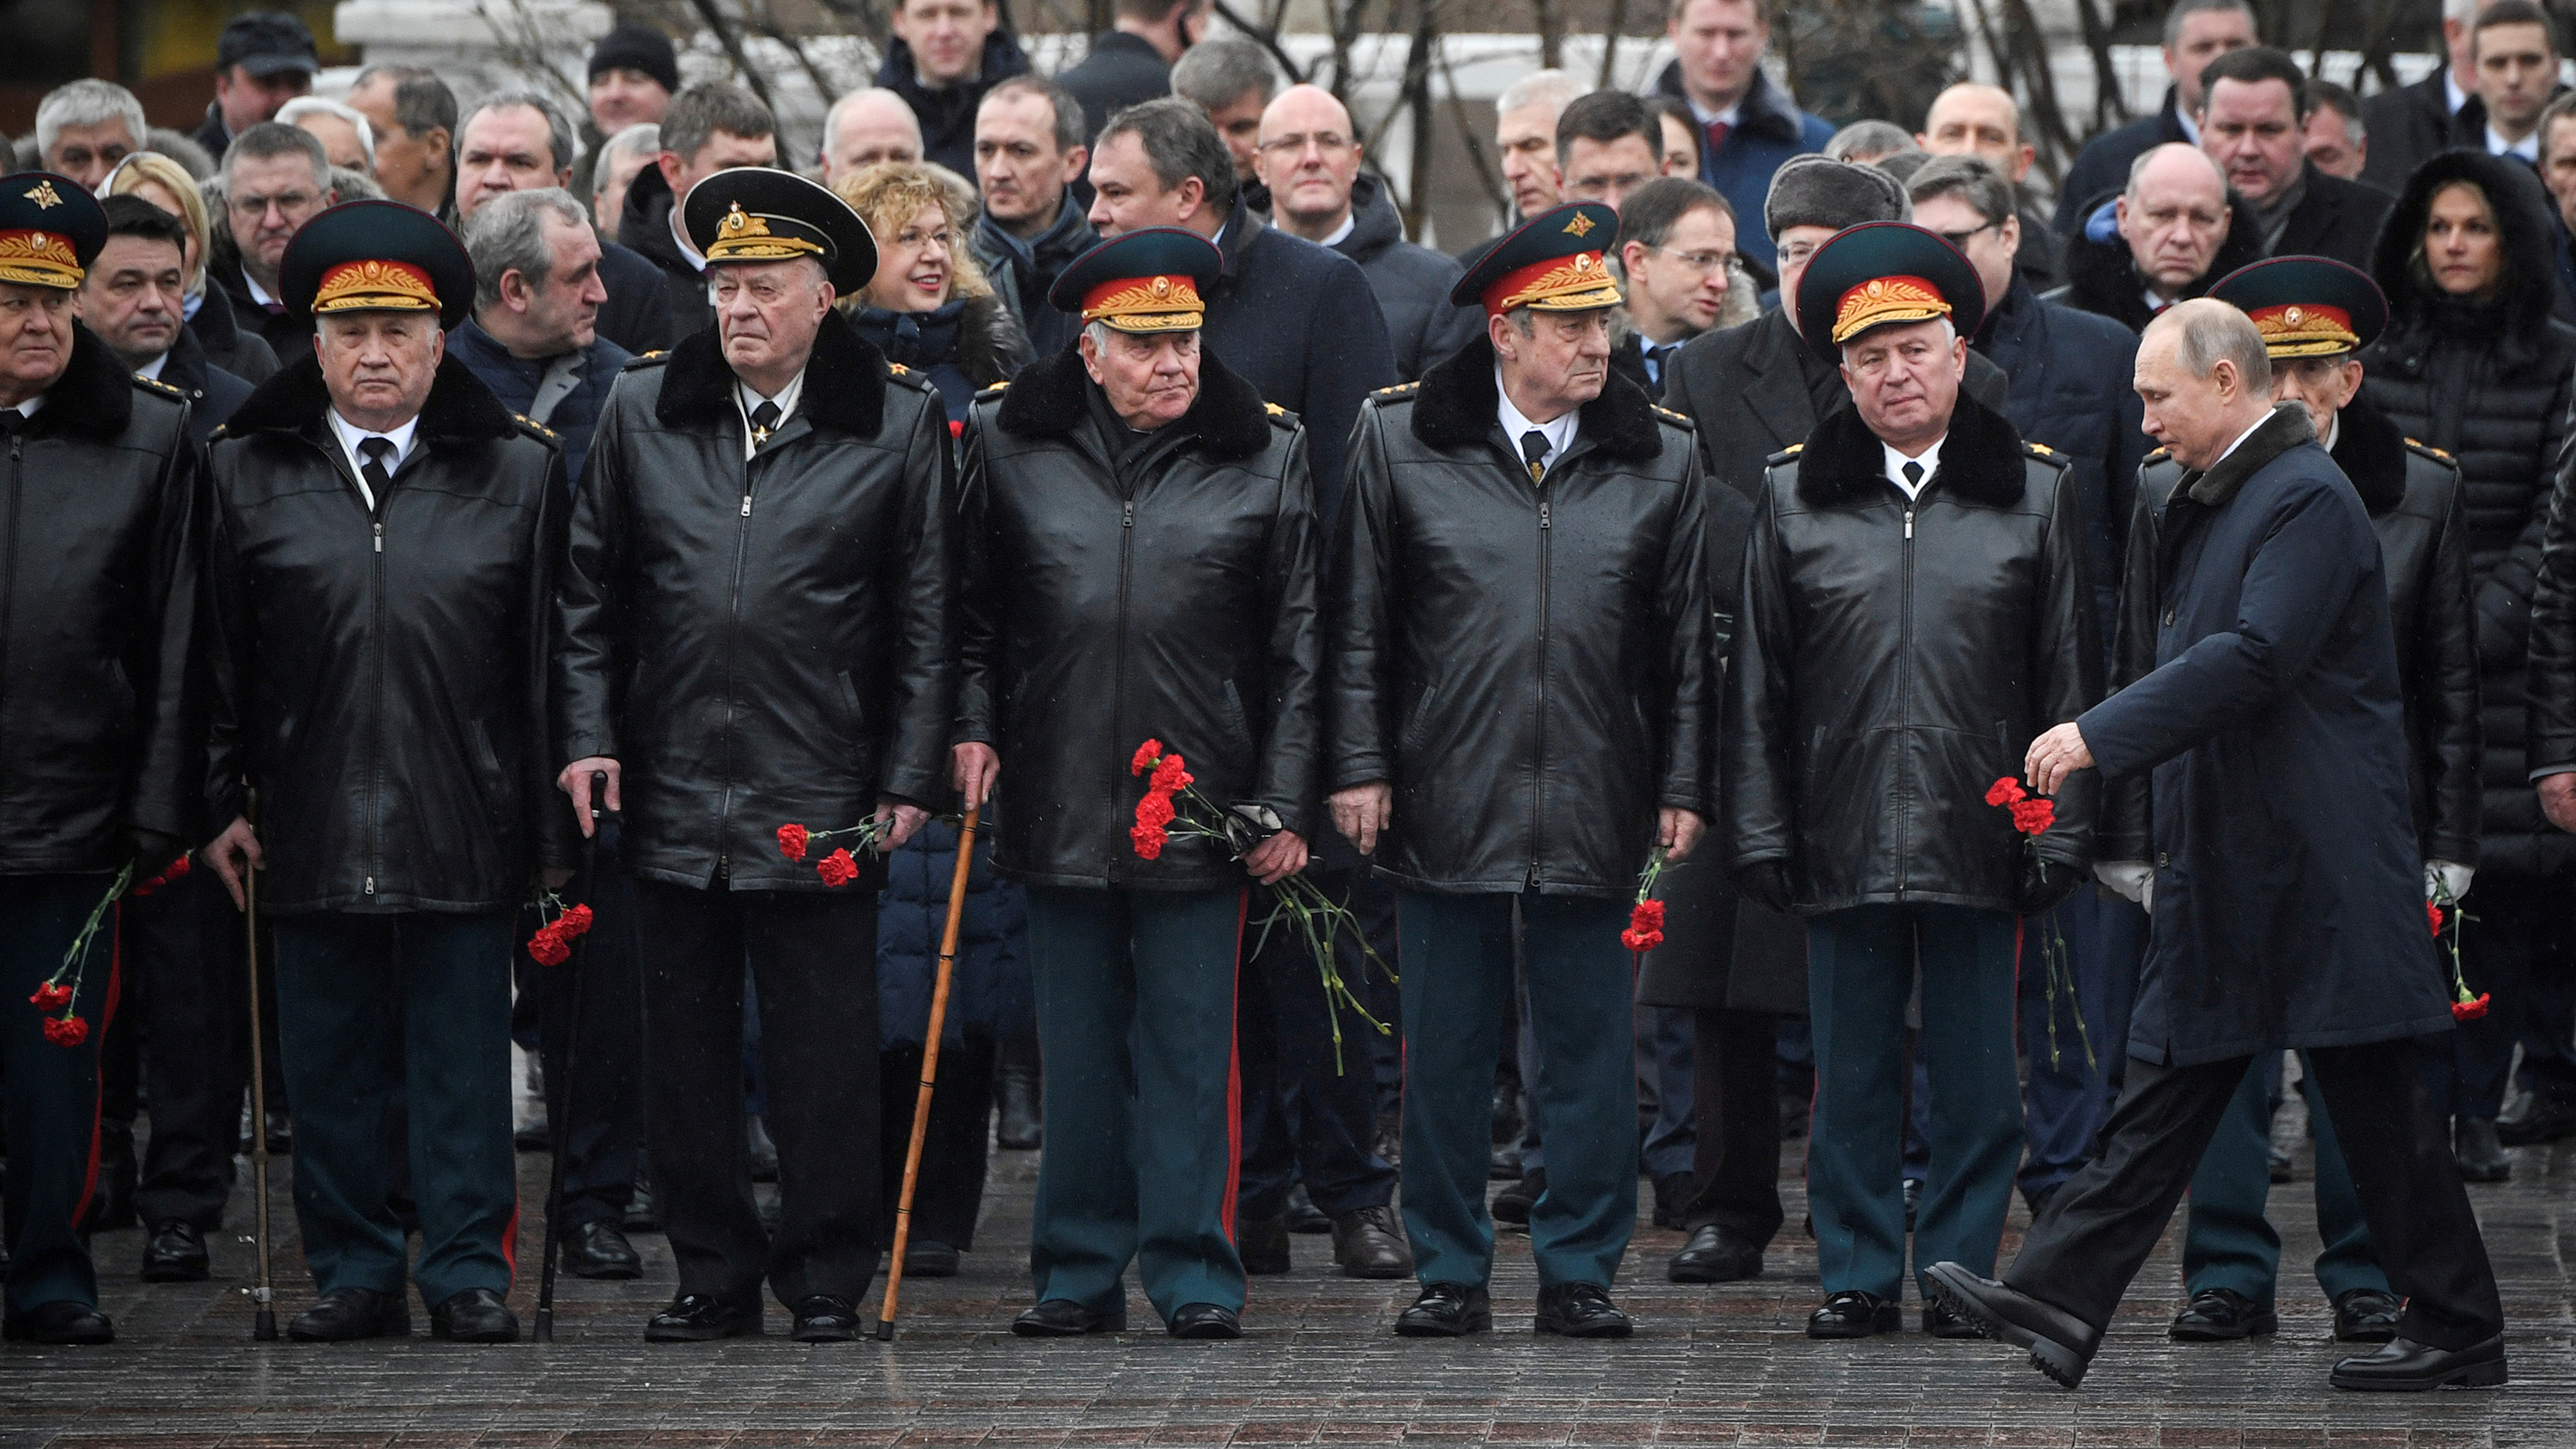 The photo shows Putin walking past a line of military top brass.